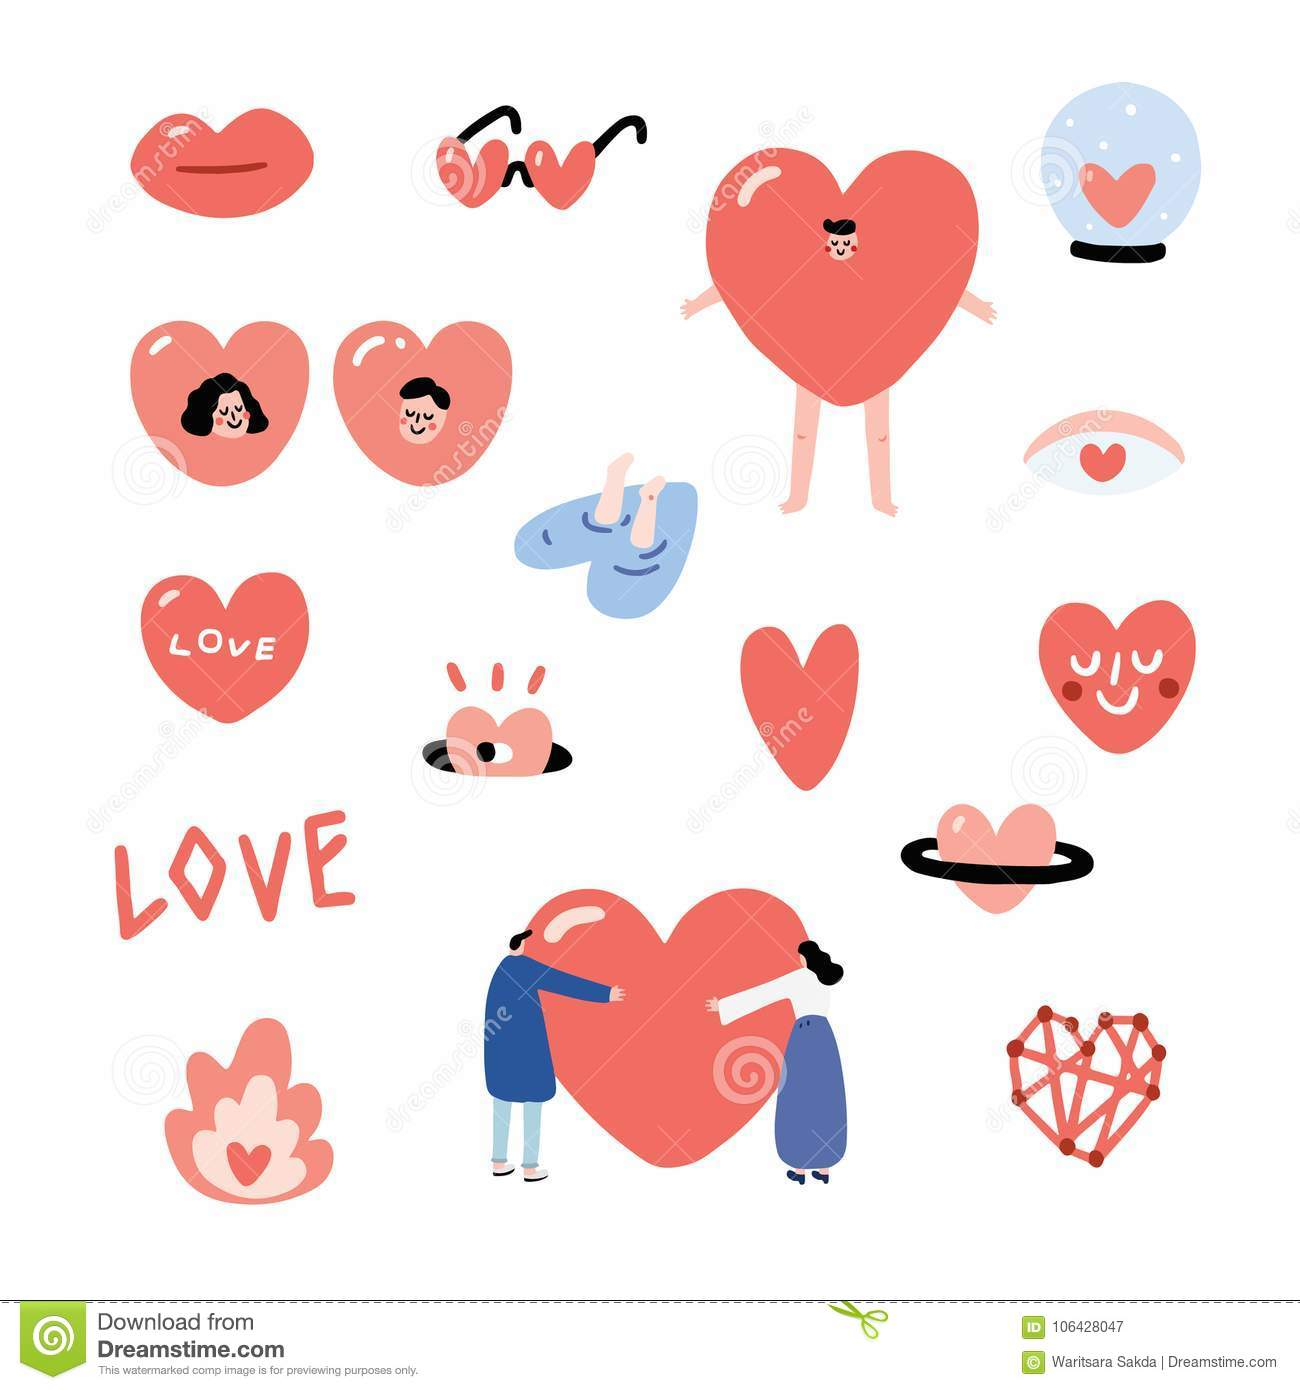 Set of Valentines hand drawn vector illustration with sunglasses,glass ball,man, girl,people hug,smiley. Heart character set.